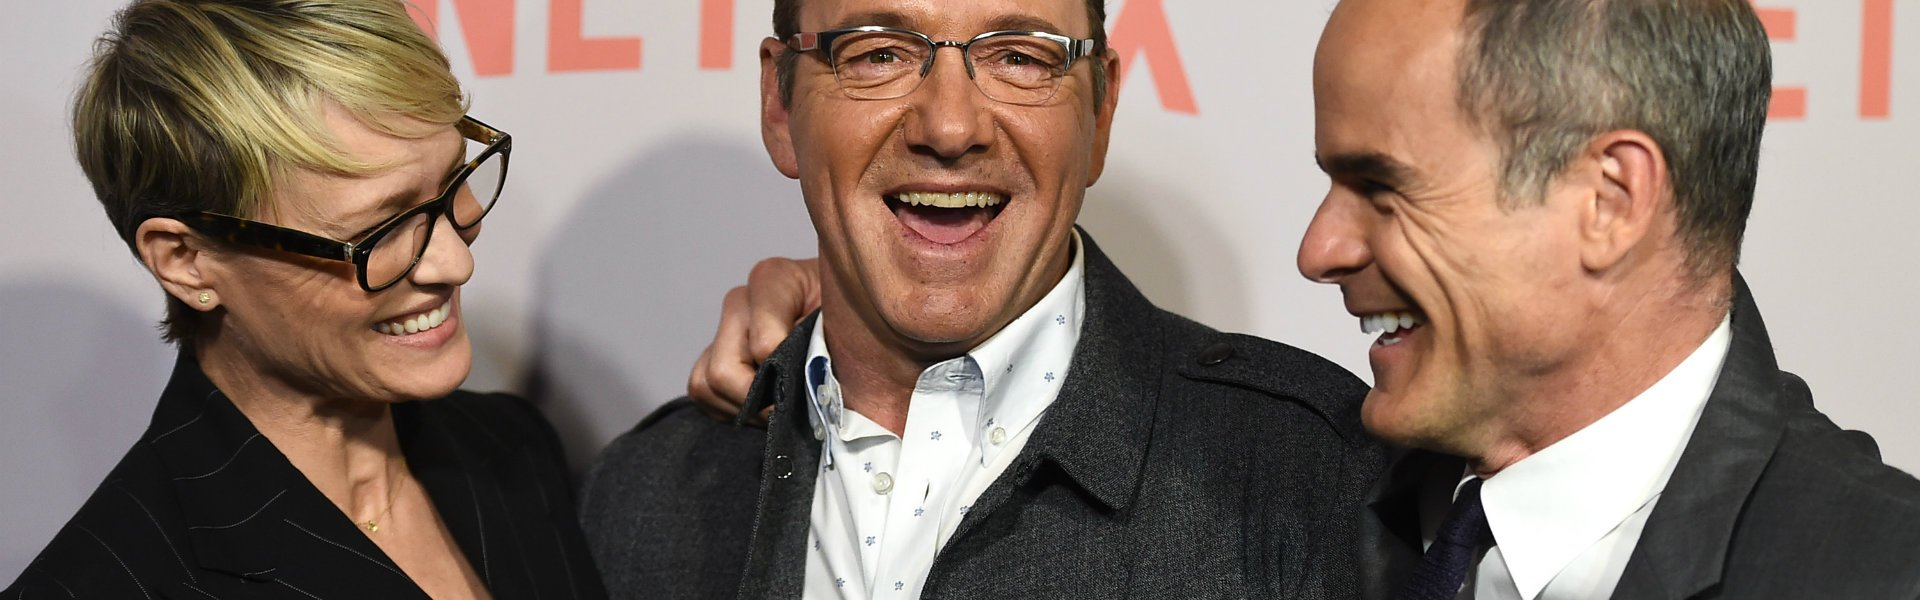 sustituir a Kevin Spacey